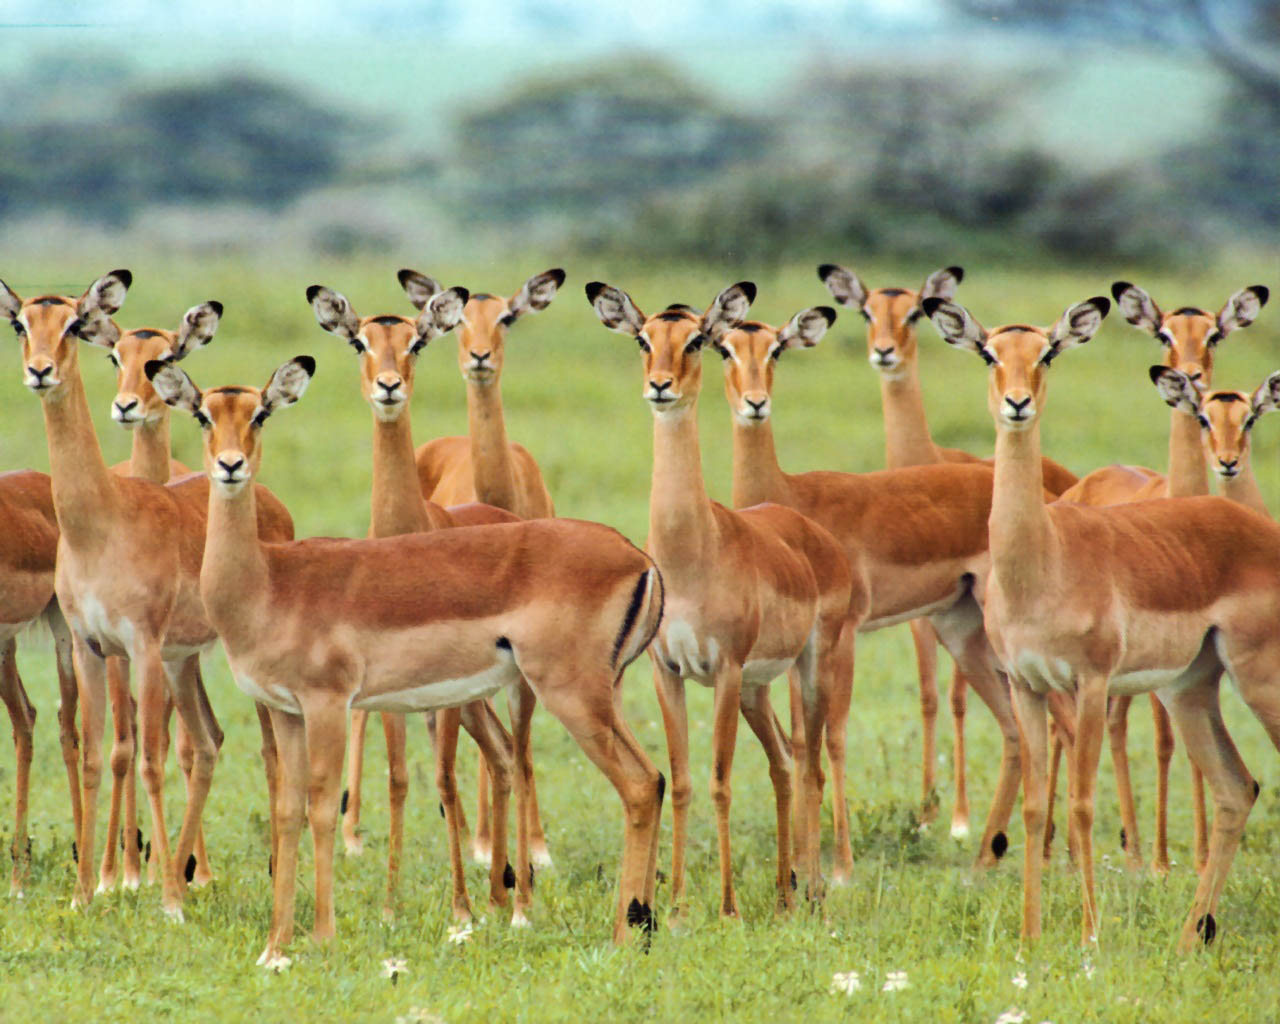 Previous African Wildlife Wallpaper Impala